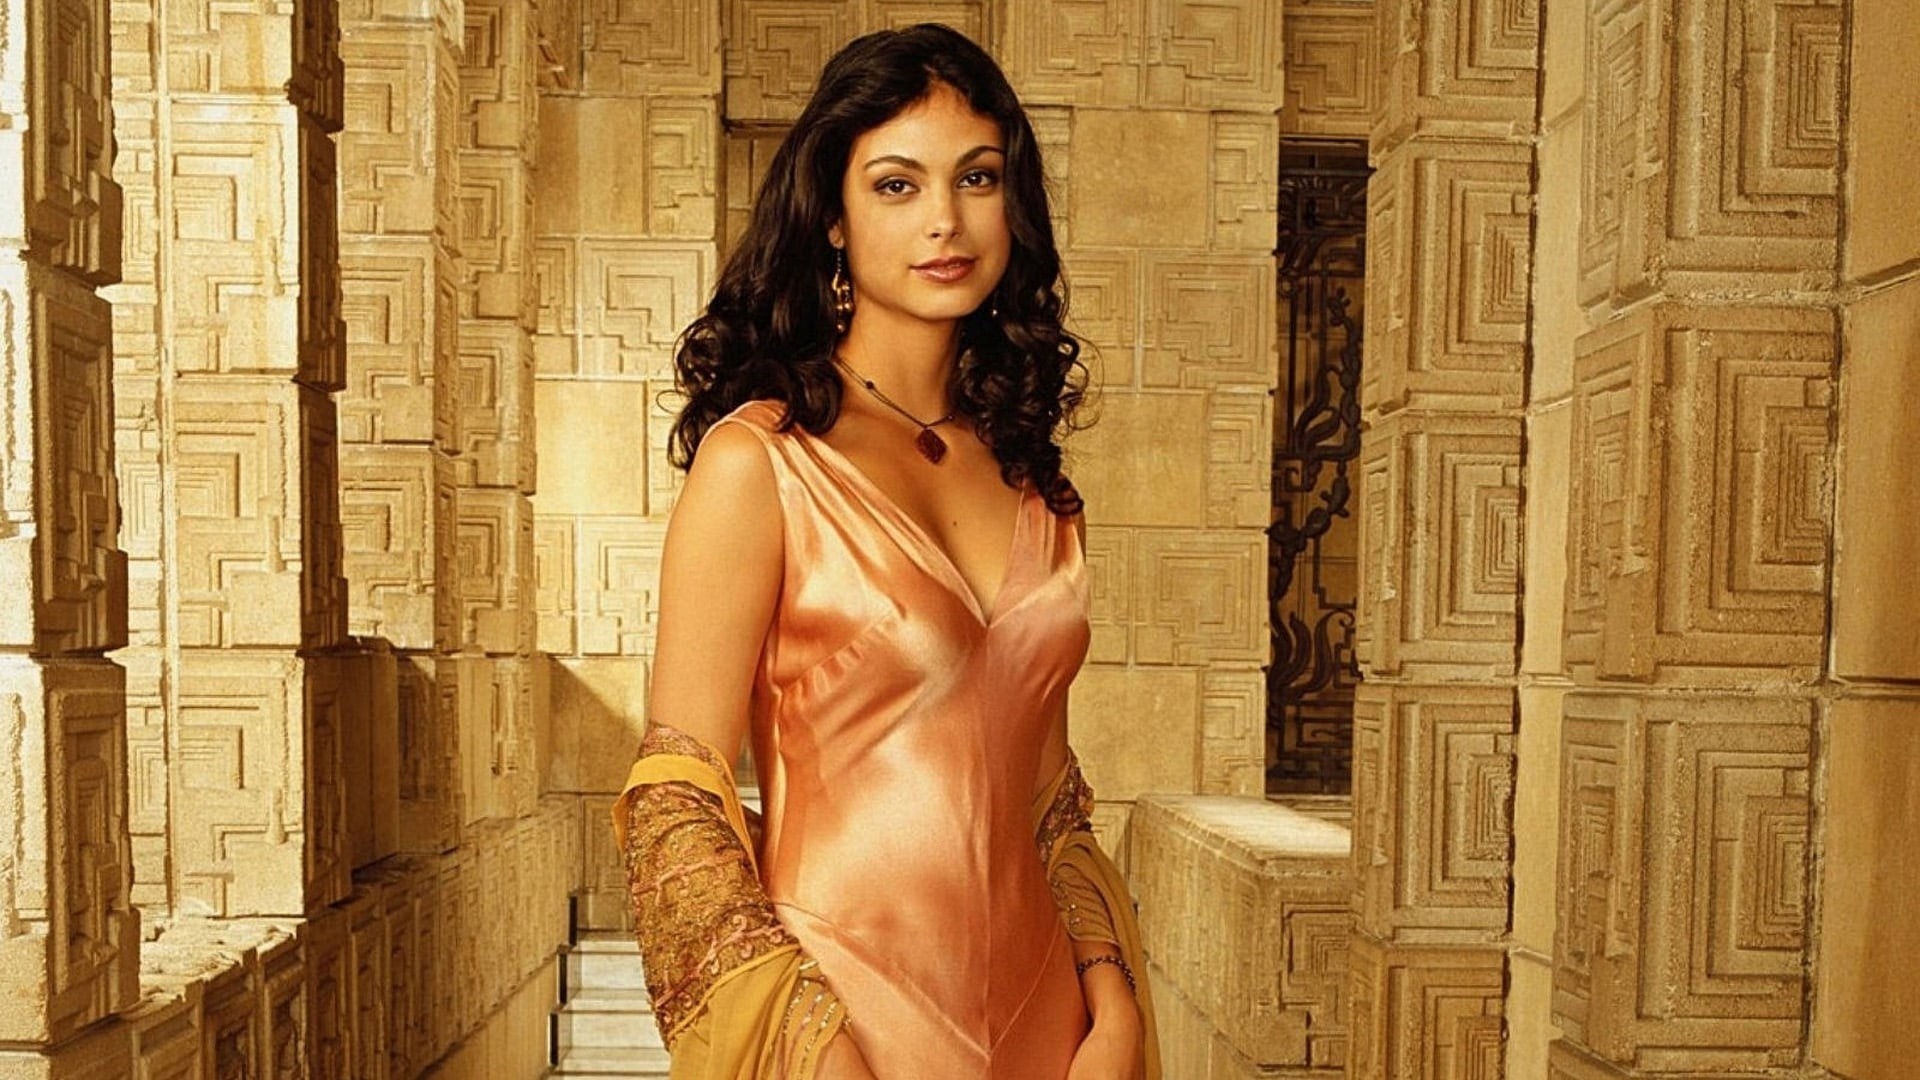 Morena Baccarin Free Wallpaper and Background